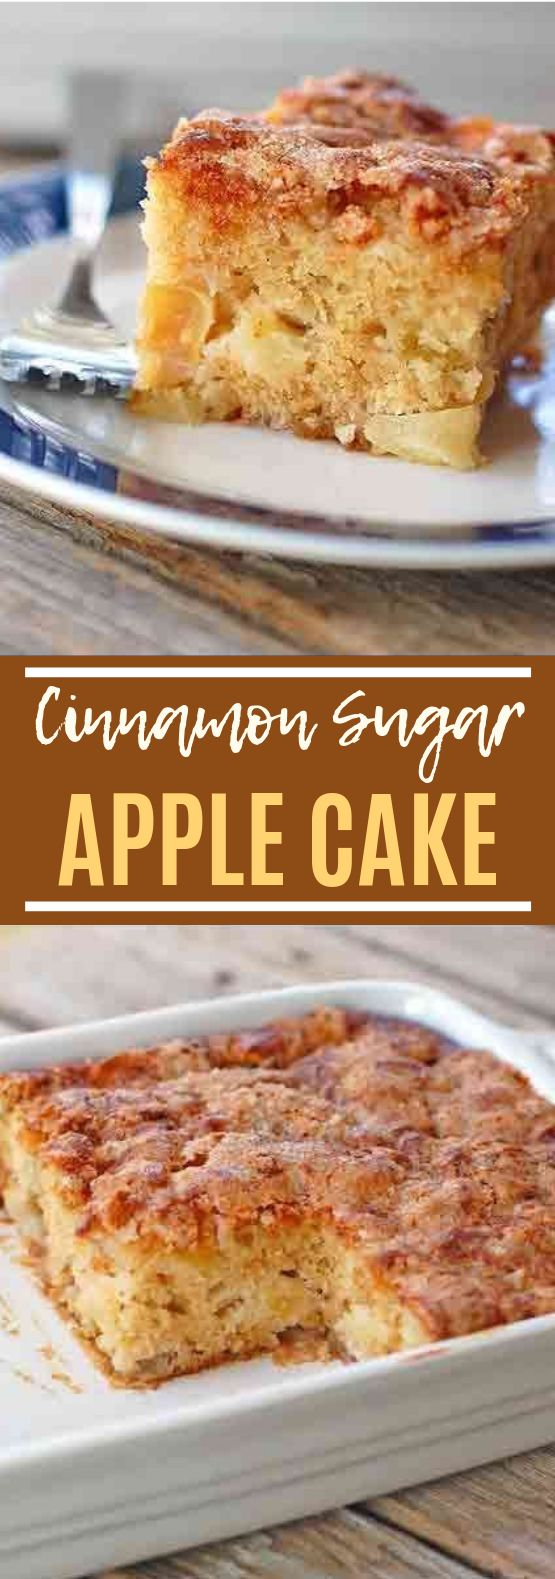 Cinnamon Sugar Apple Cake #bakingrecipe #cake